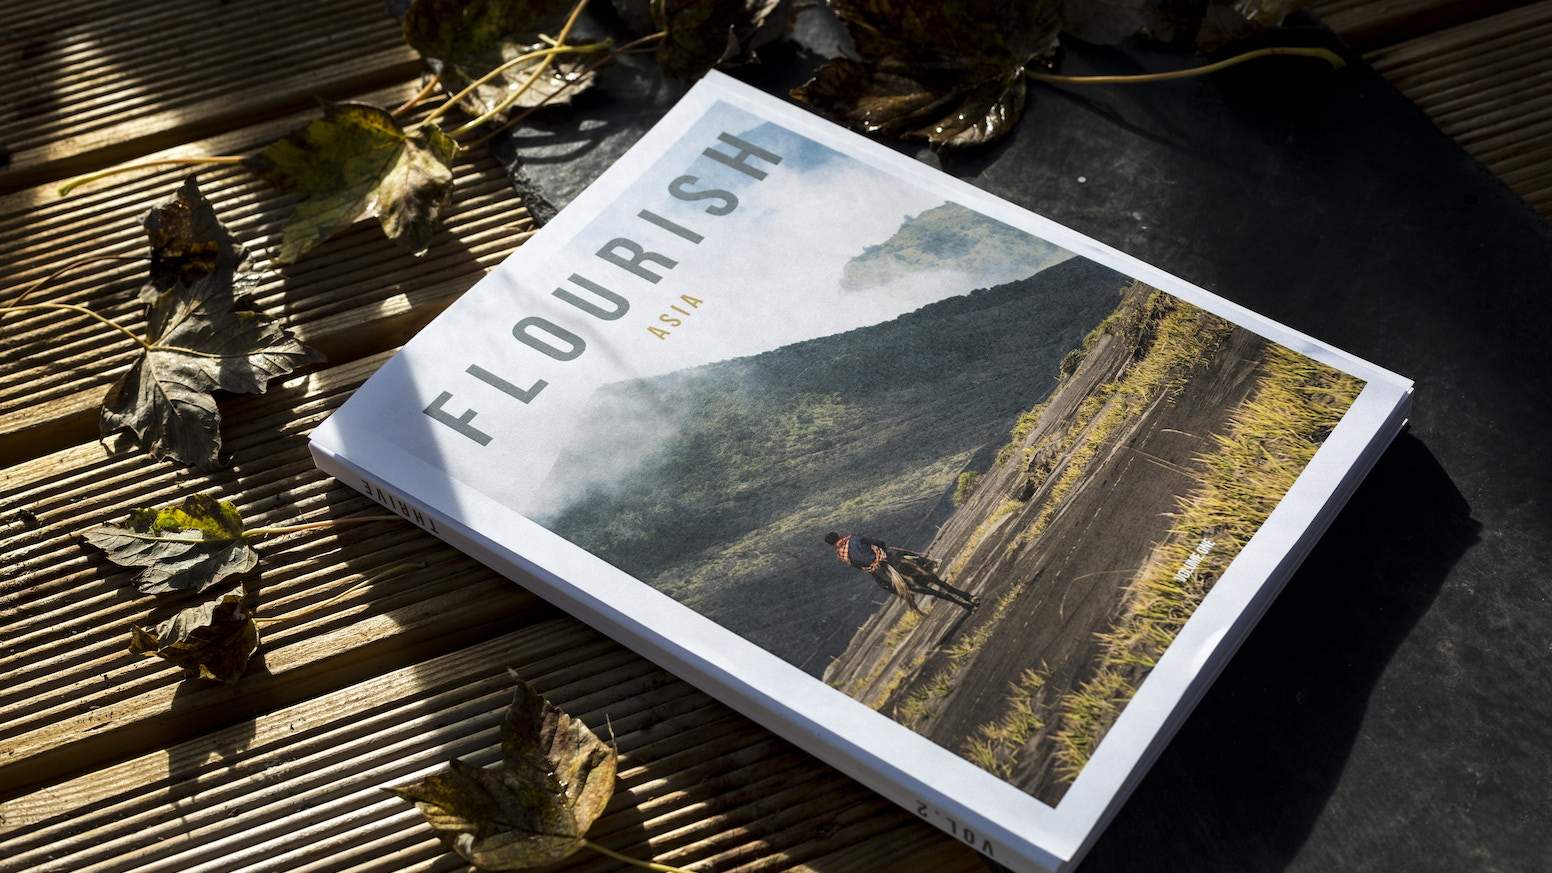 Flourish is all about thriving in a particular place, community, culture and flourishing in the outdoors.